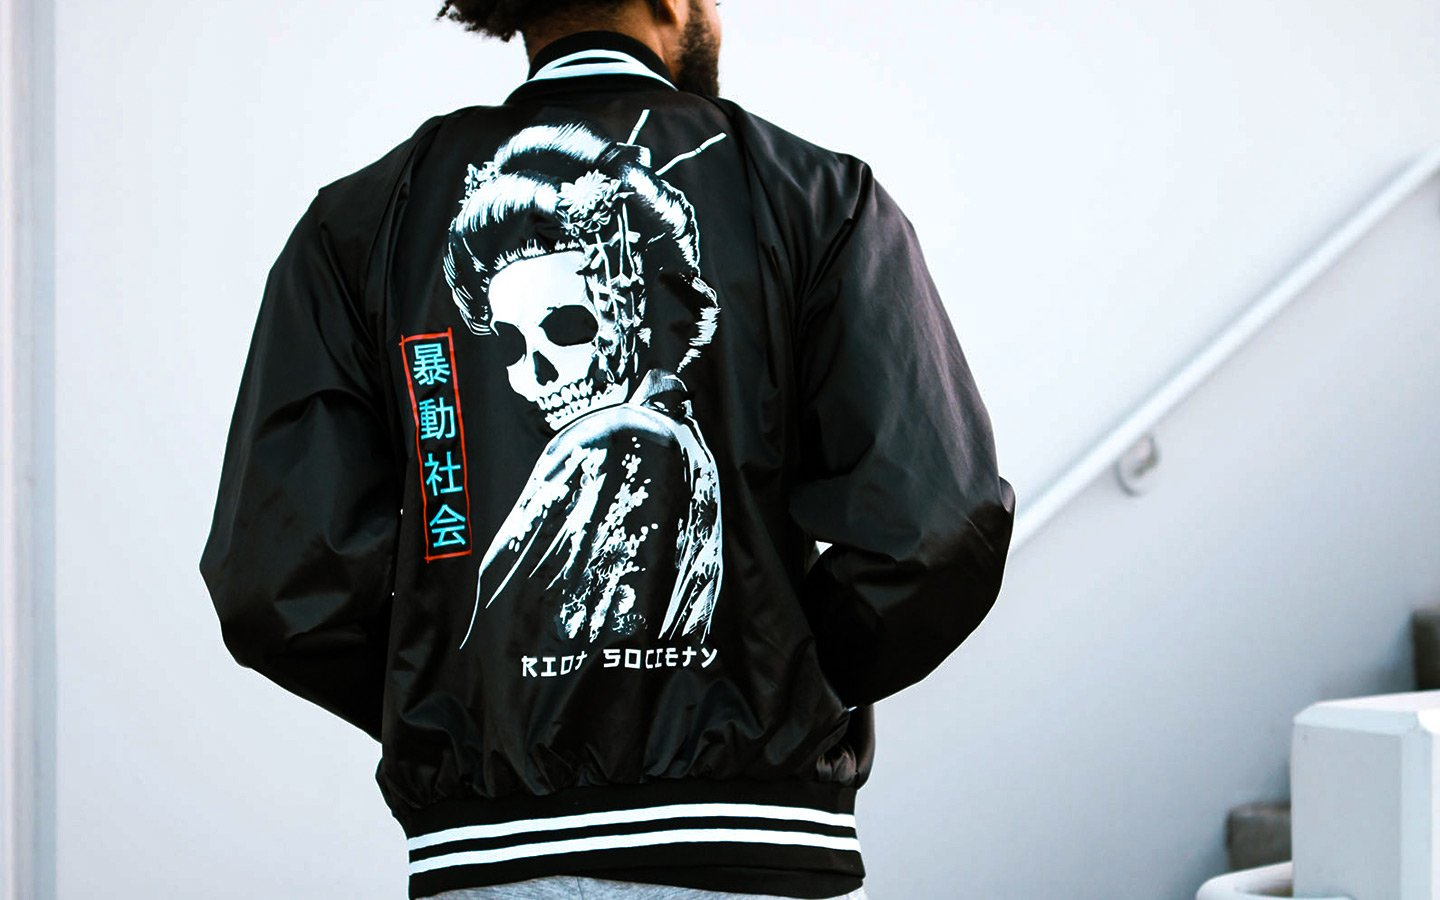 geisha skeleton satin jacket in black from brand riot society for men and women on thedrop